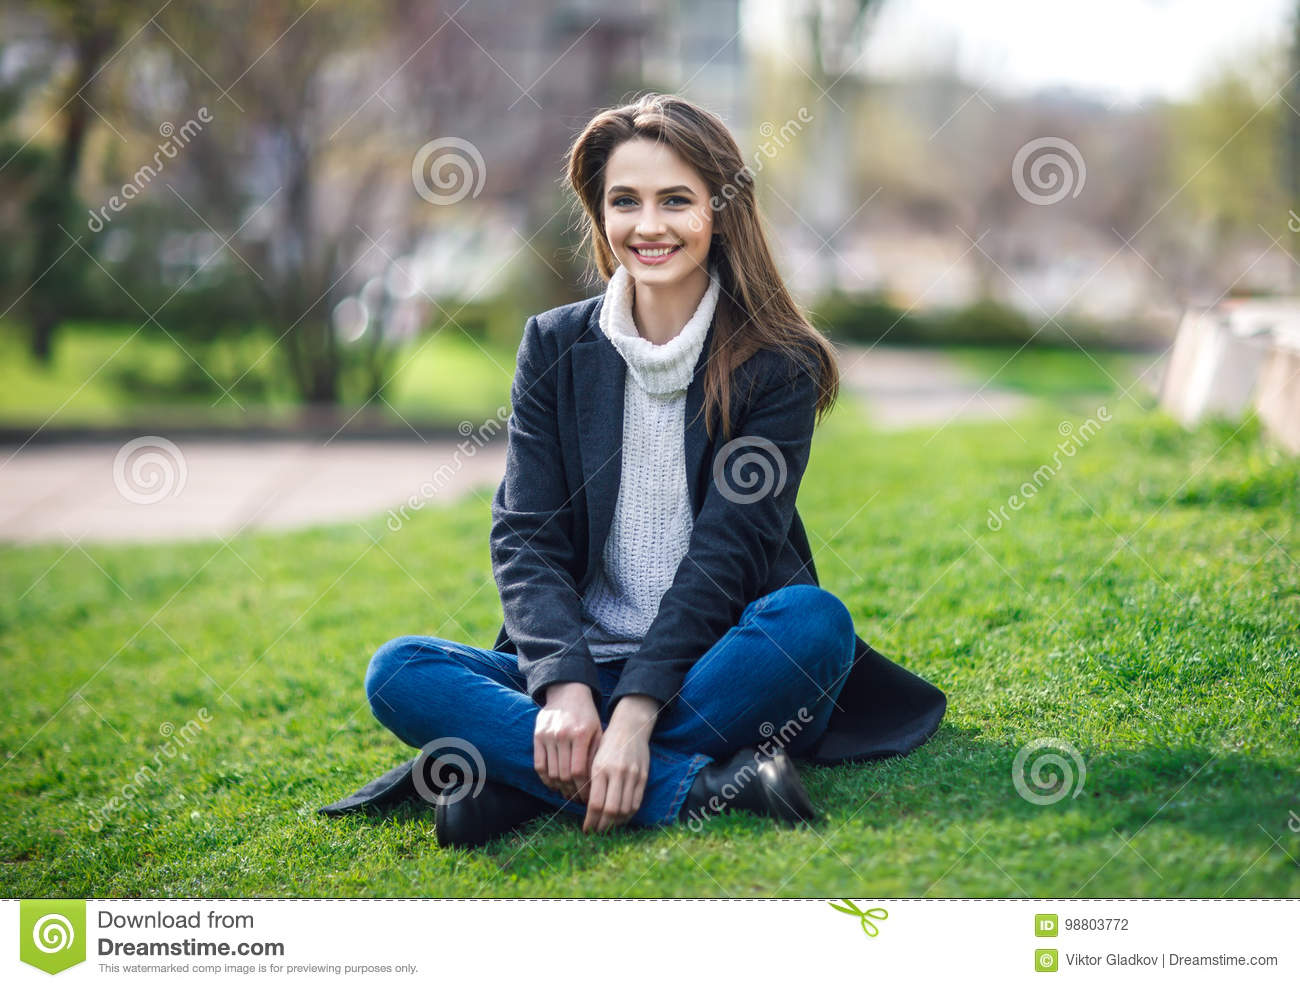 Beautiful smiling woman sitting on a grass outdoor